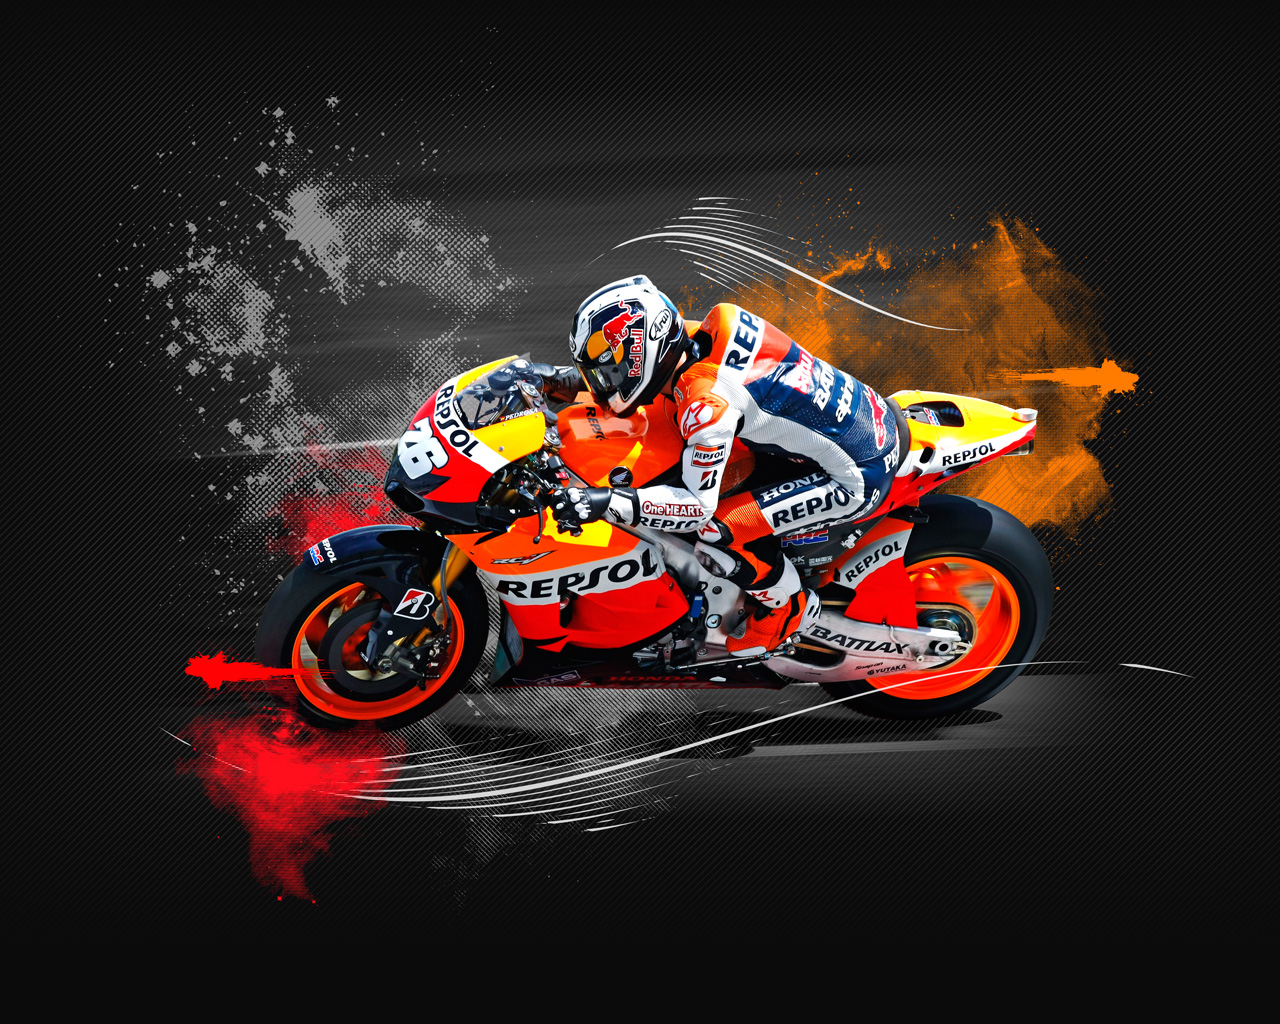 pedrosa motogp wallpaper hd - photo #1